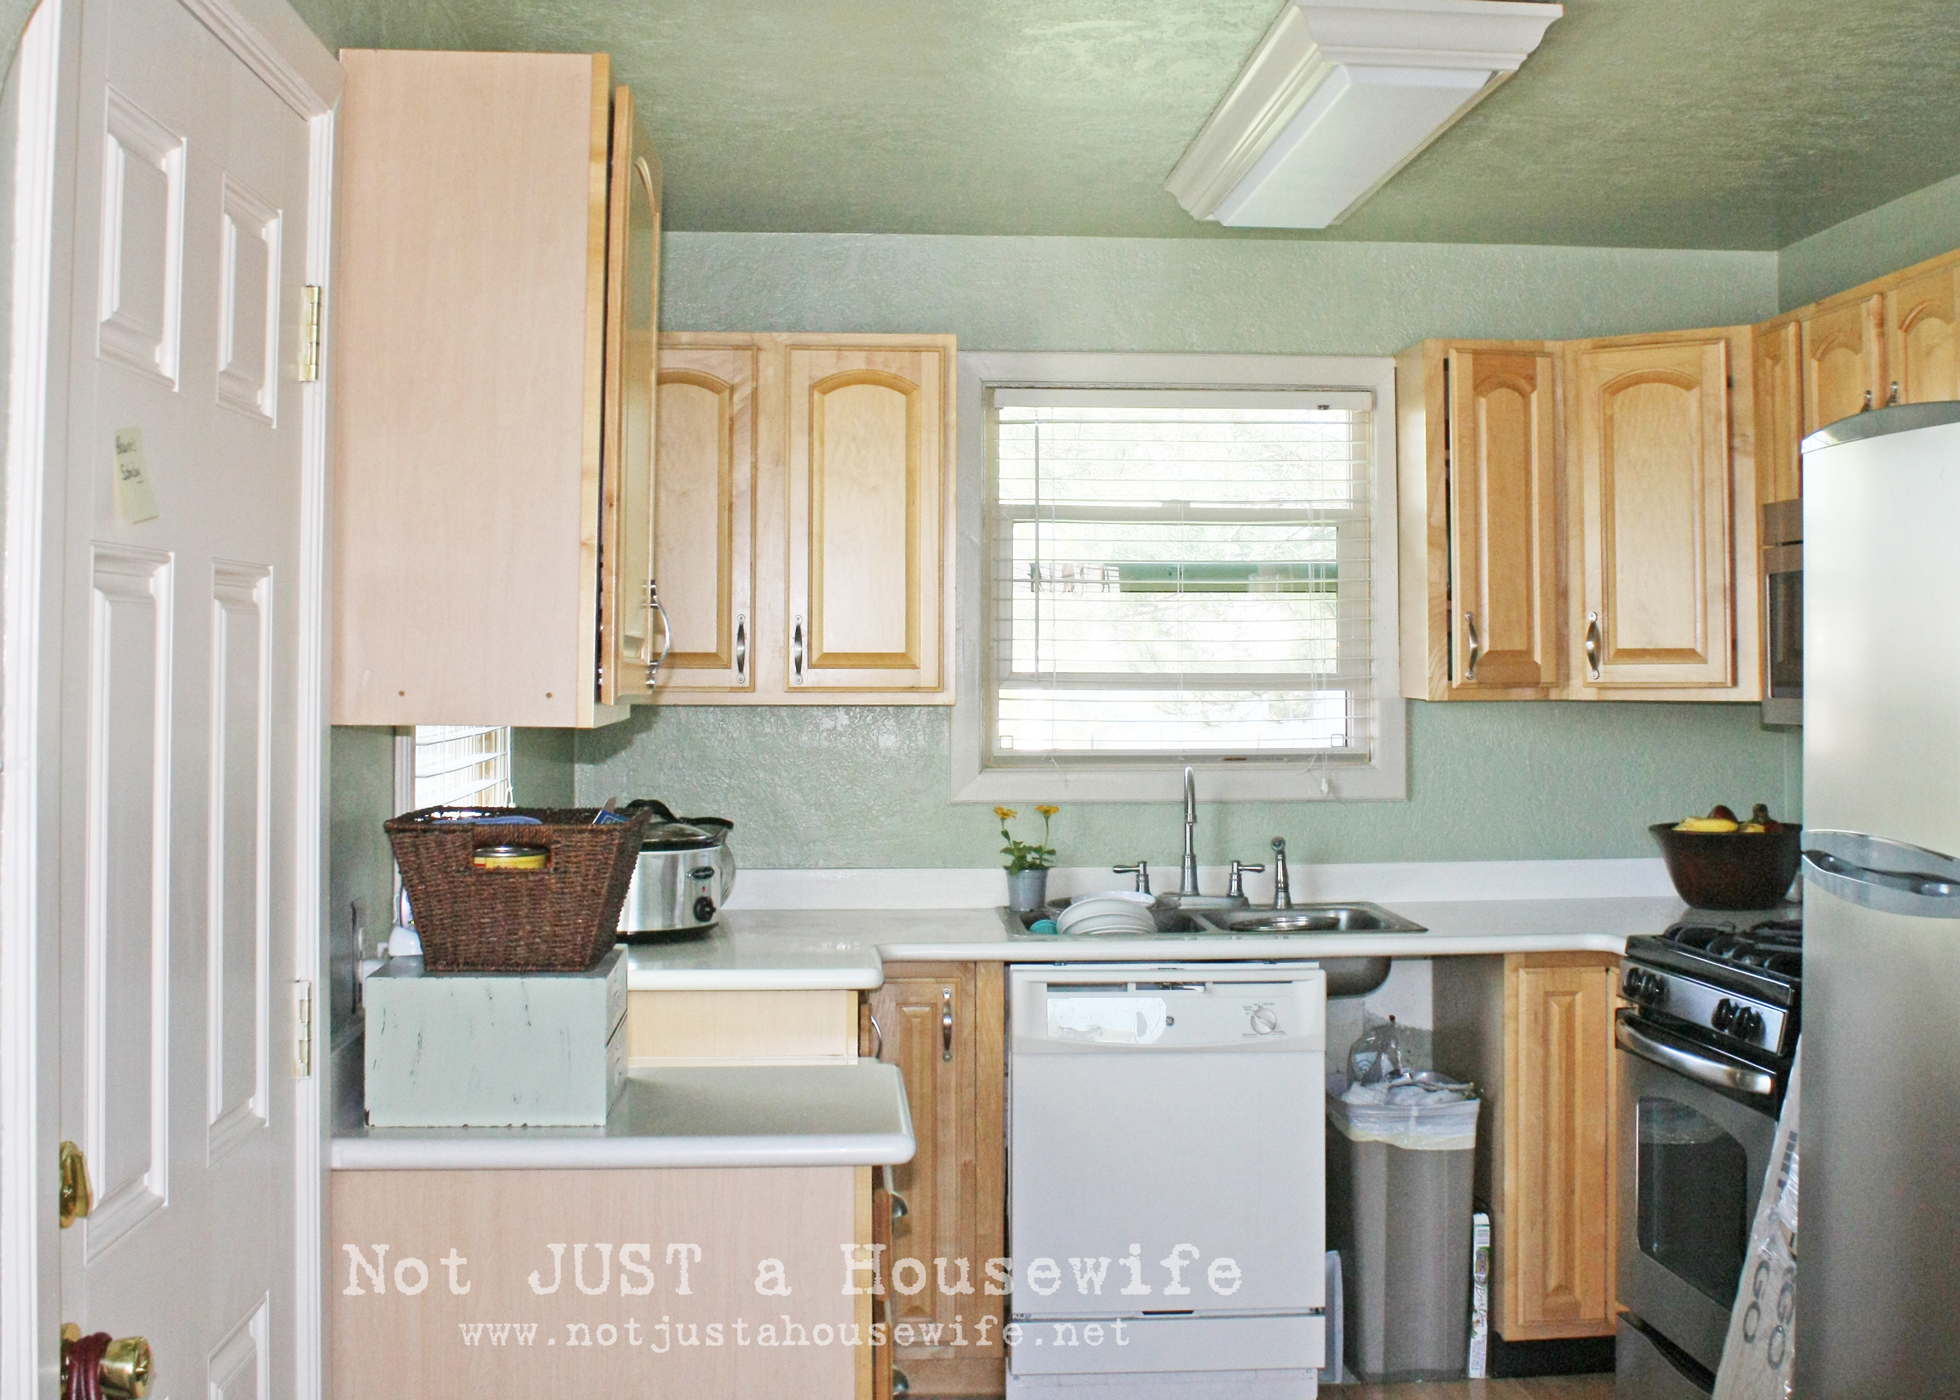 Outdated kitchen with teal walls and wood cabinetry